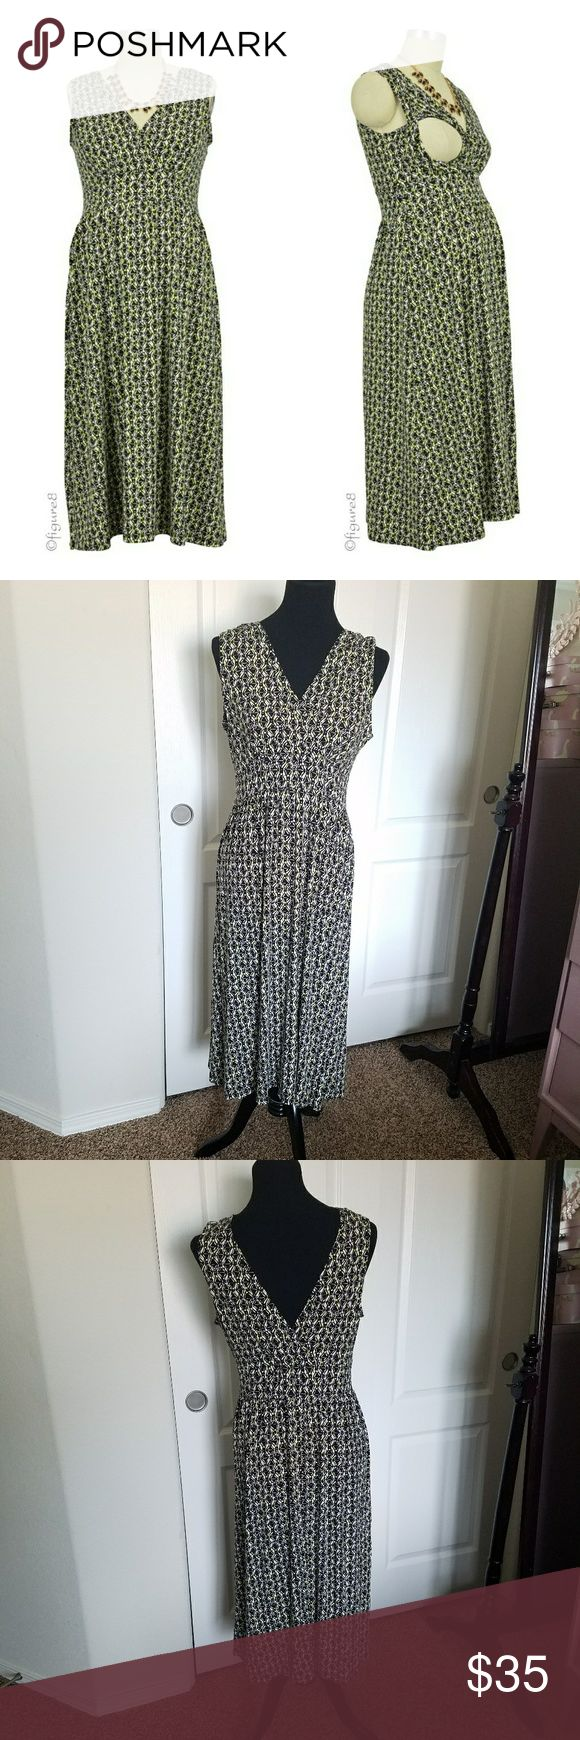 🤰Nursing/Maternity Dress Midi length dress with v-neck and back. Opens for nursing access. Lightweight and great for layering with a cardigan or tights. Black and white with a little purple and lime green in the pattern. EUC Annee Matthew Dresses